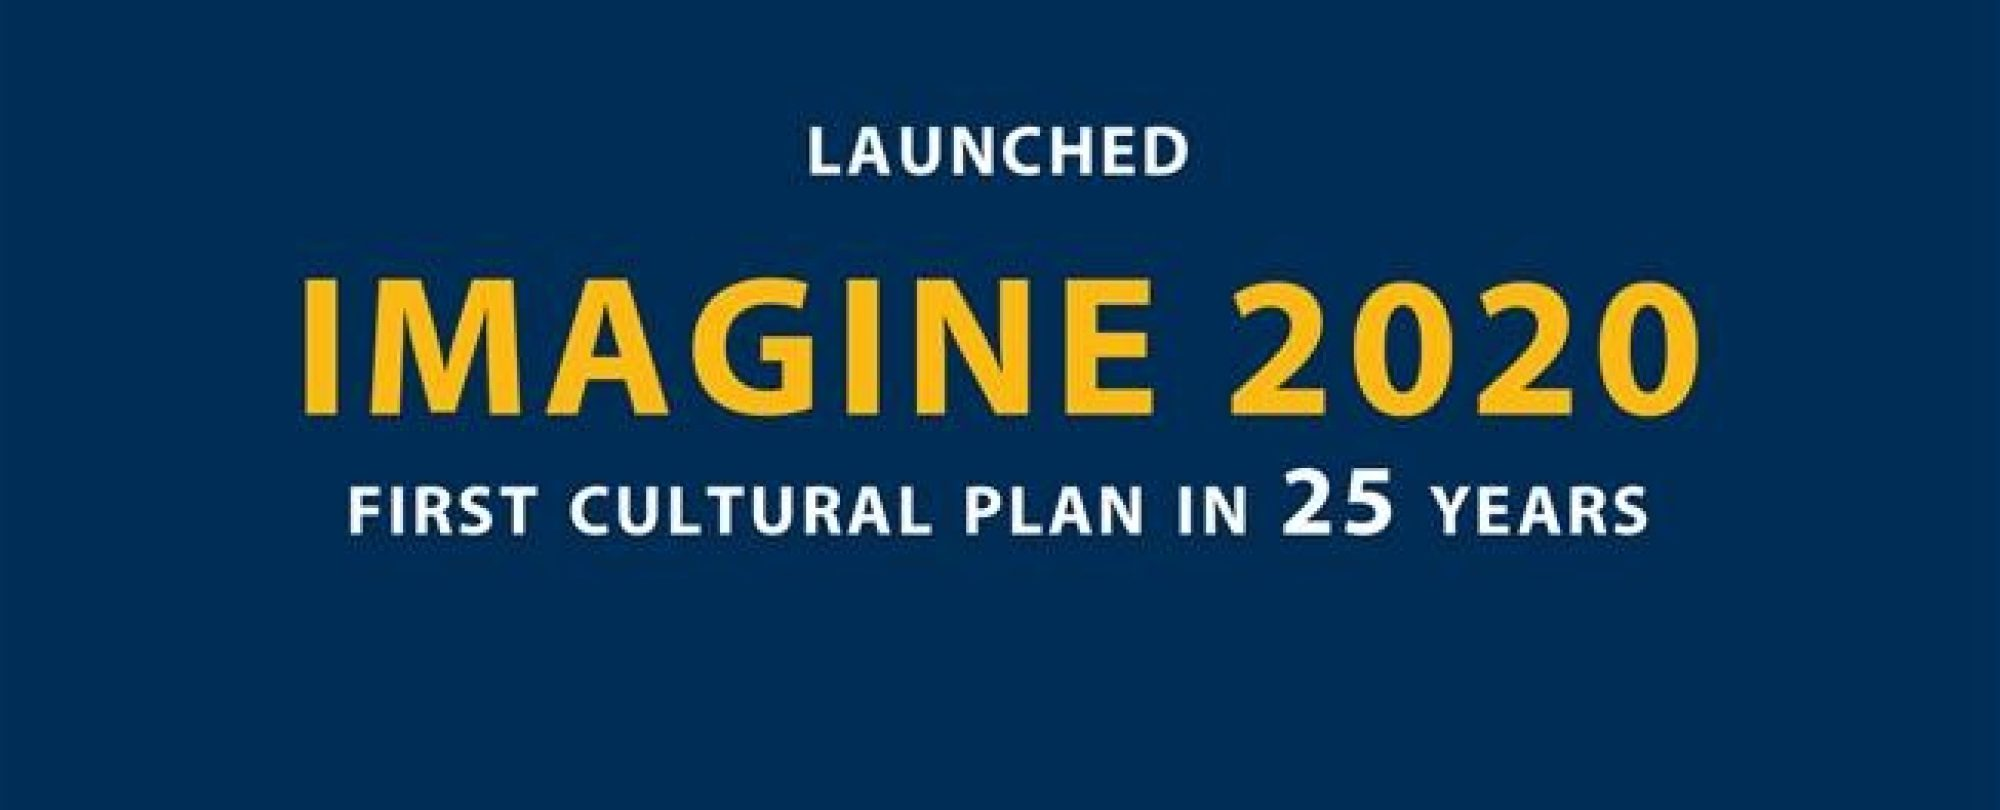 Launched Imagine 2020. The First cultural plan in 25 years.